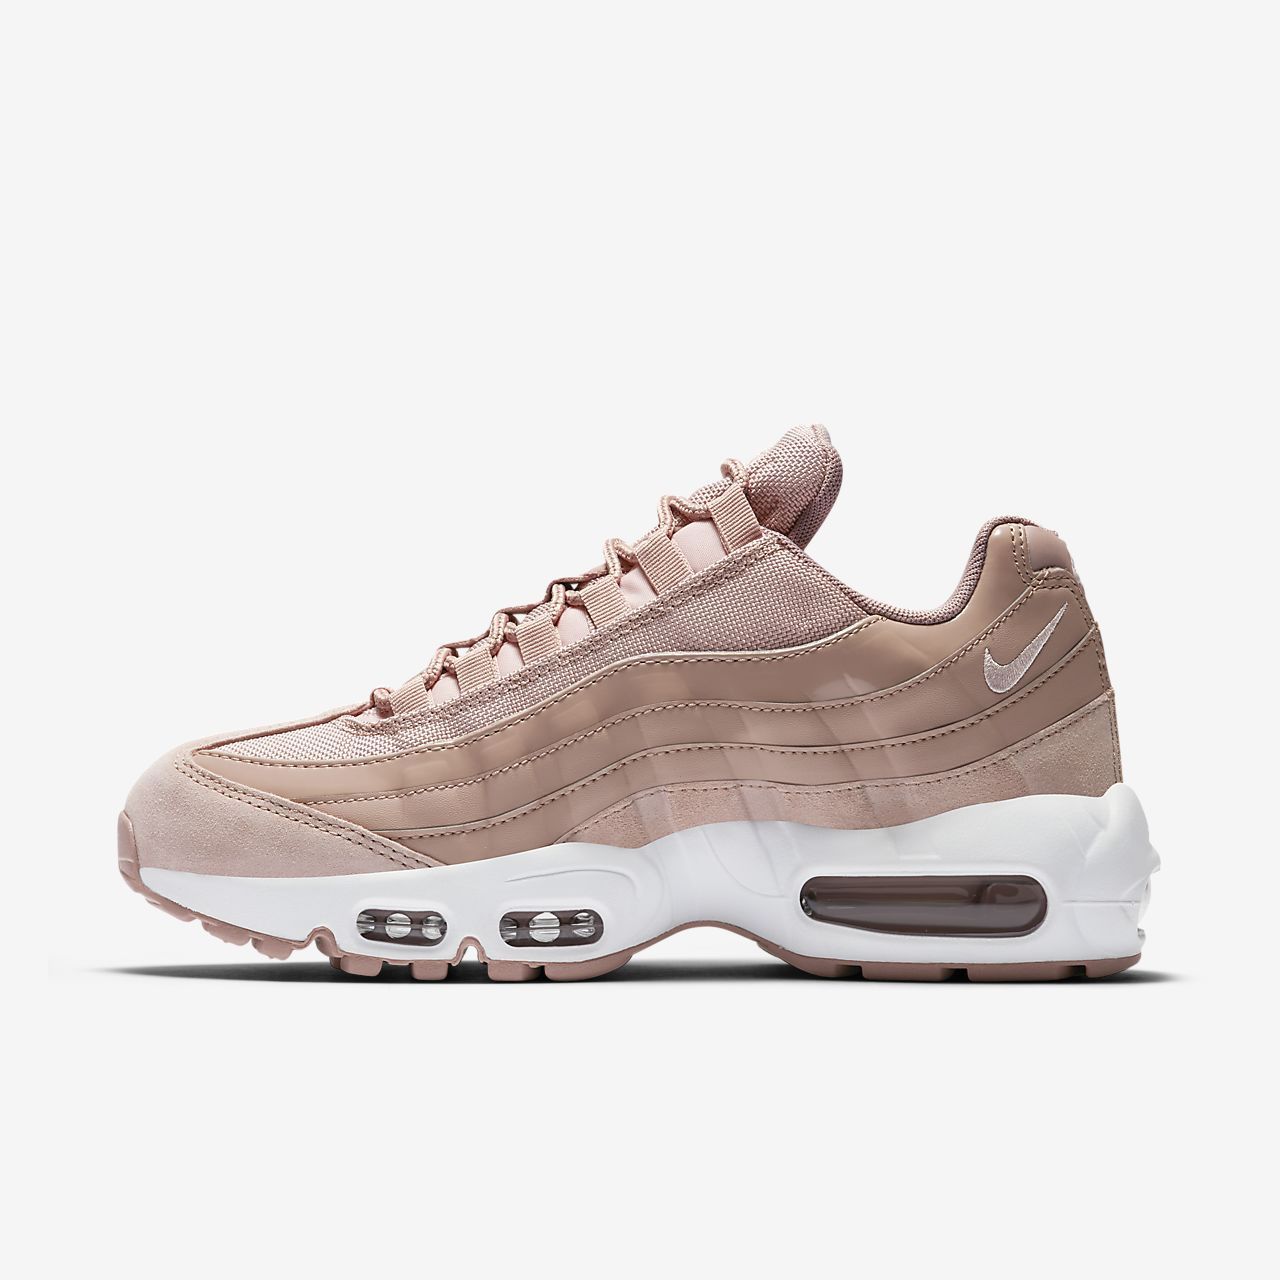 nike 95 air max womens shoes